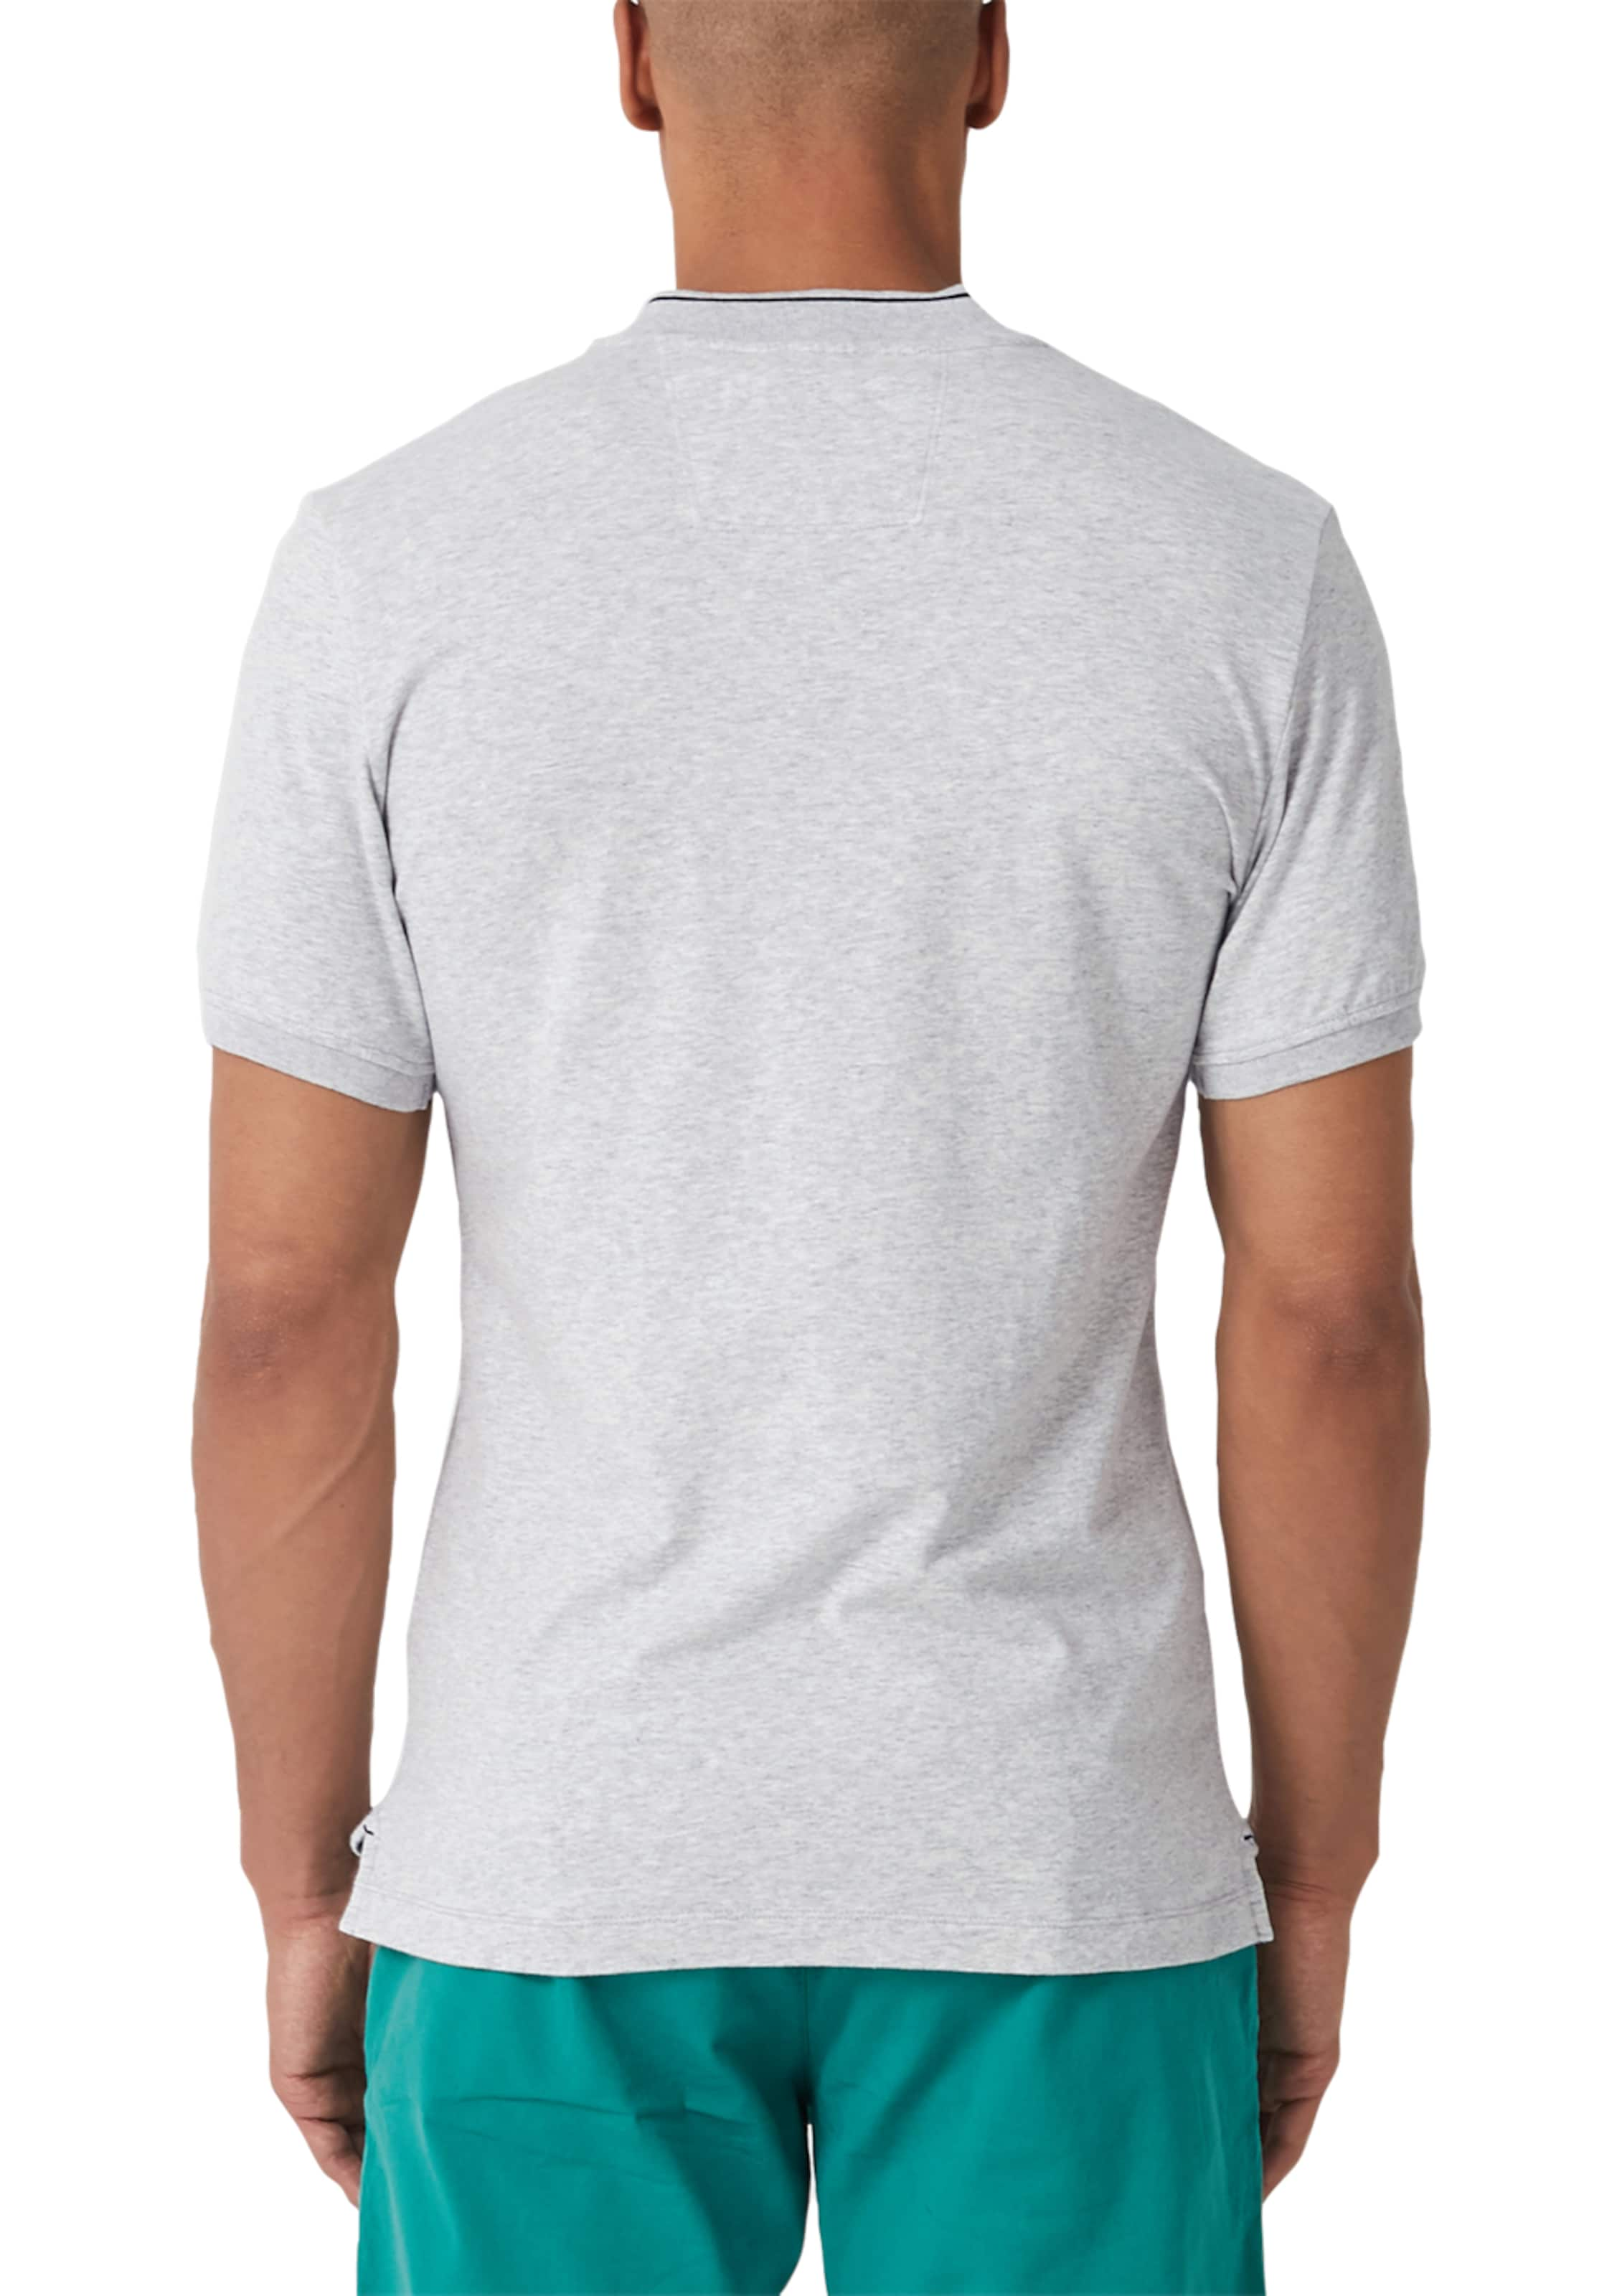 Label oliver In Poloshirtjer Hellgrau S Red knwO0P8